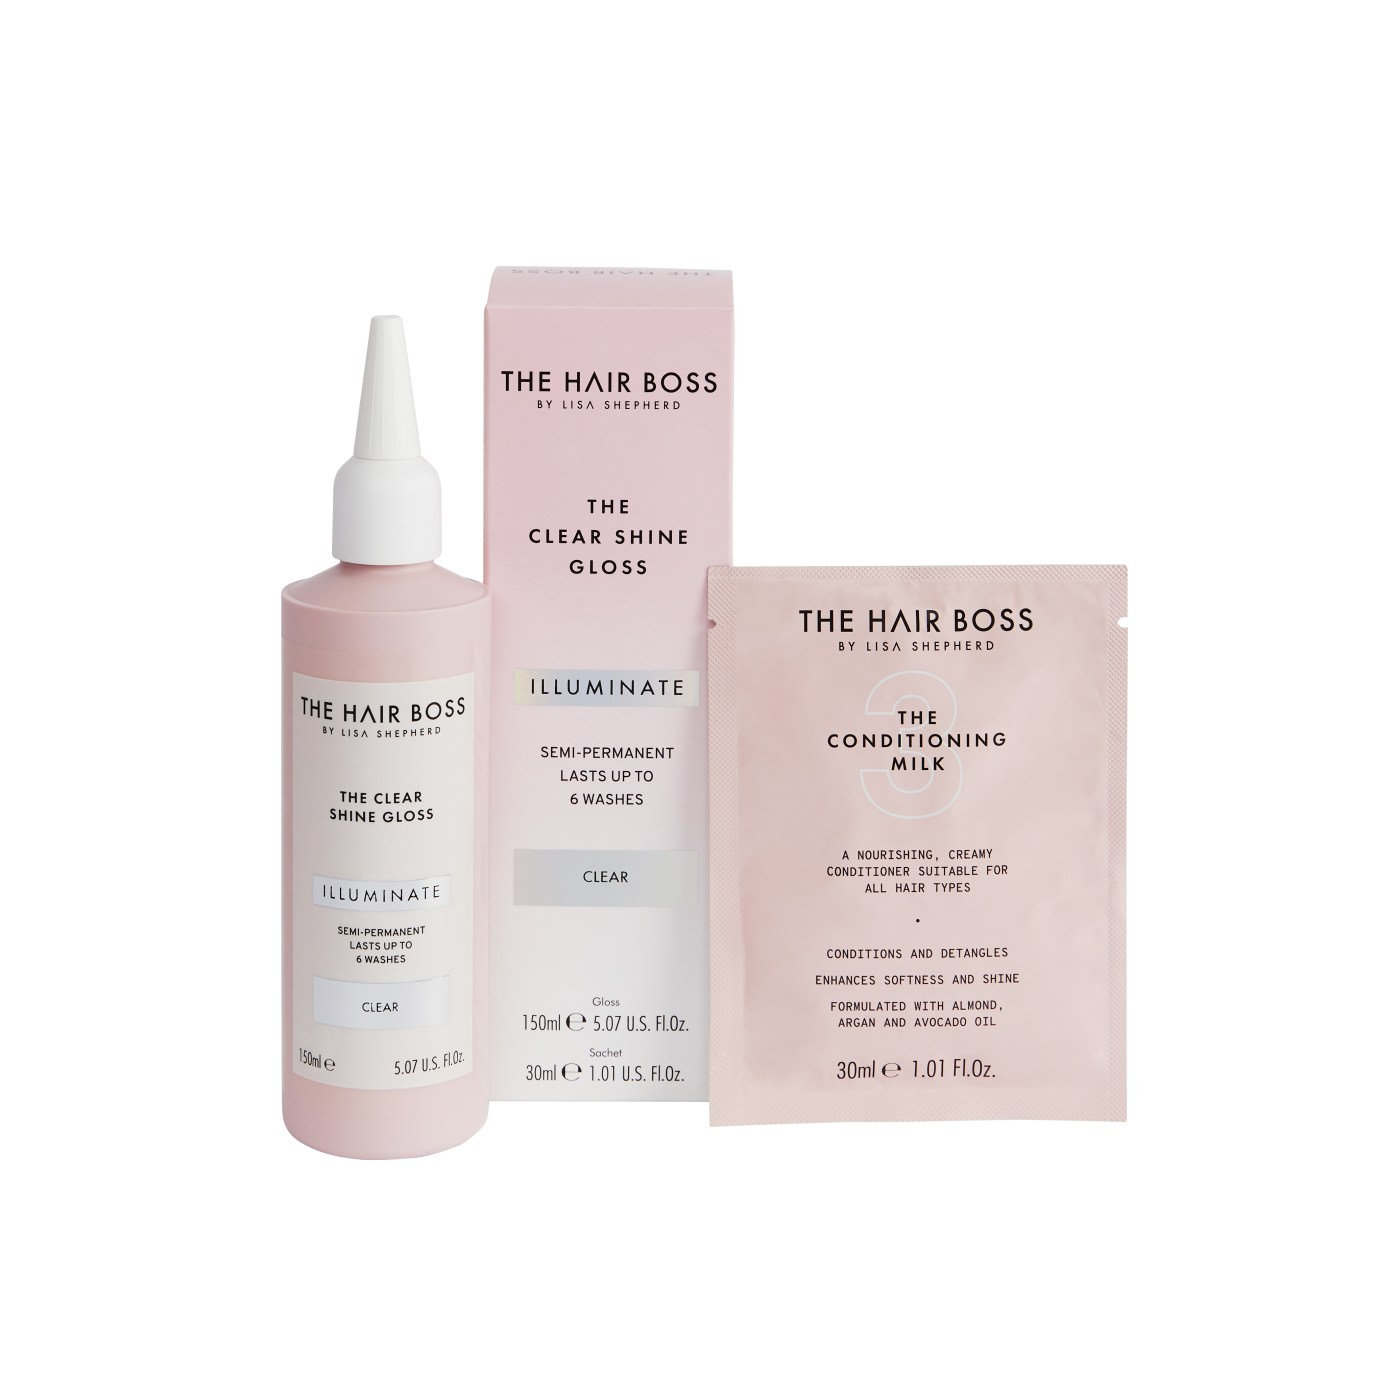 Achieve salon-worthy results with the hair boss clear shine gloss